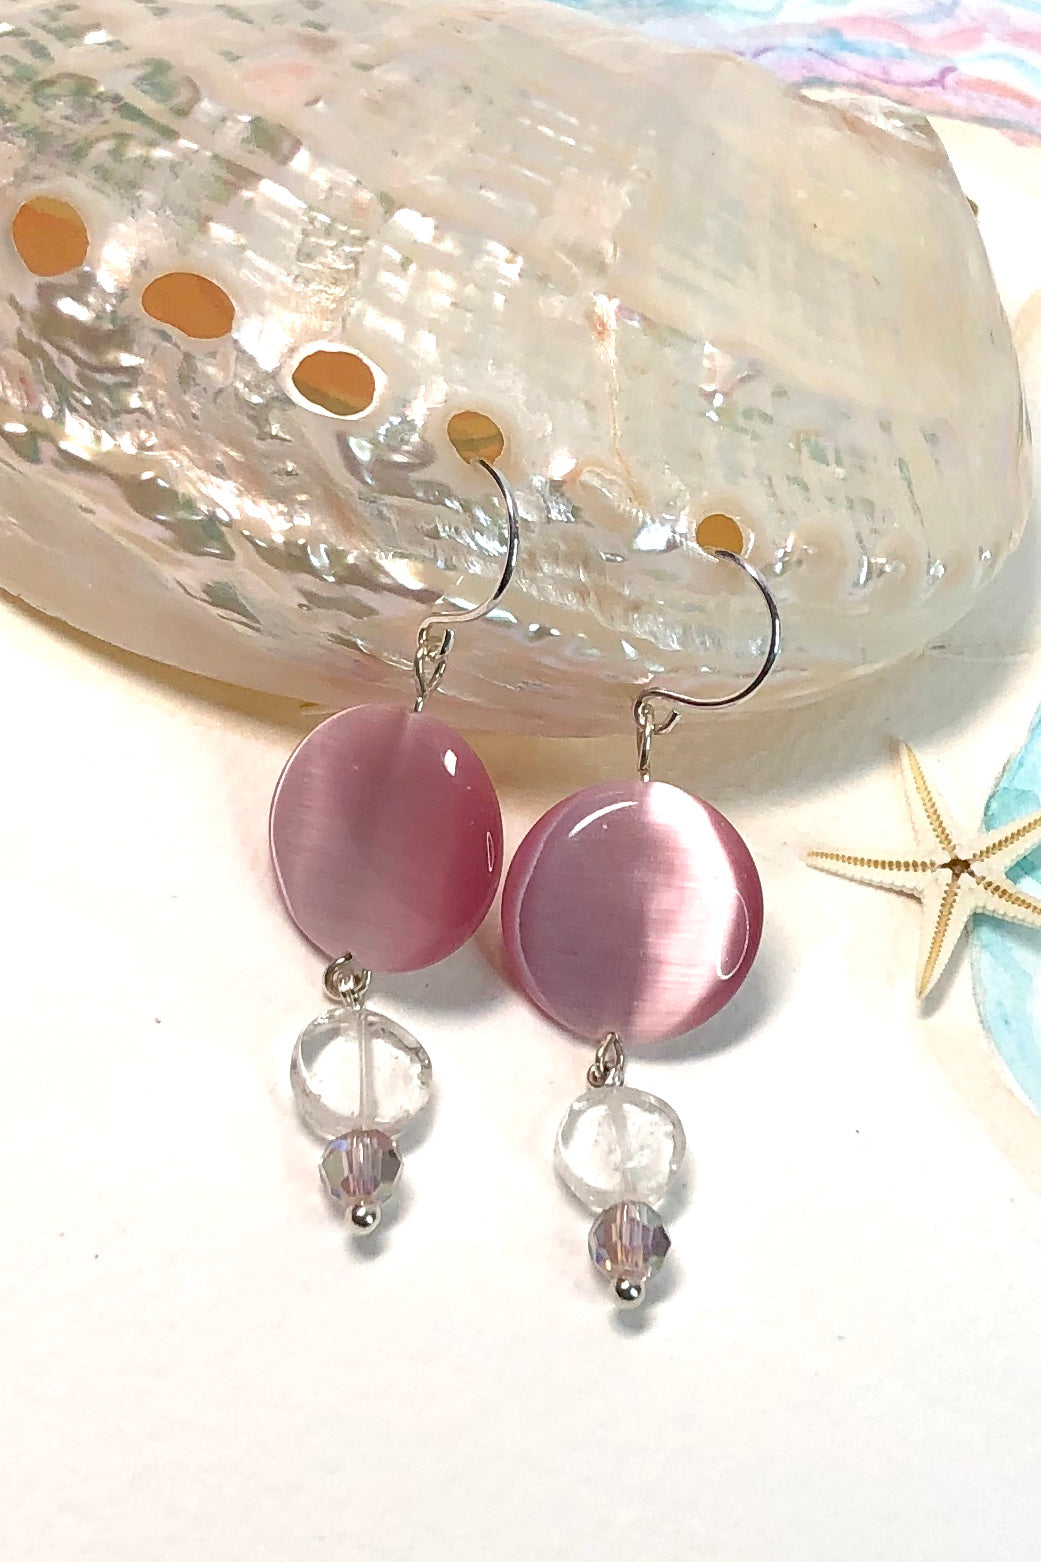 Earrings Serendipity Pink Moon are Handmade in Noosa, Australia, featuring pink rock Crystal, and 925 Silver hook.